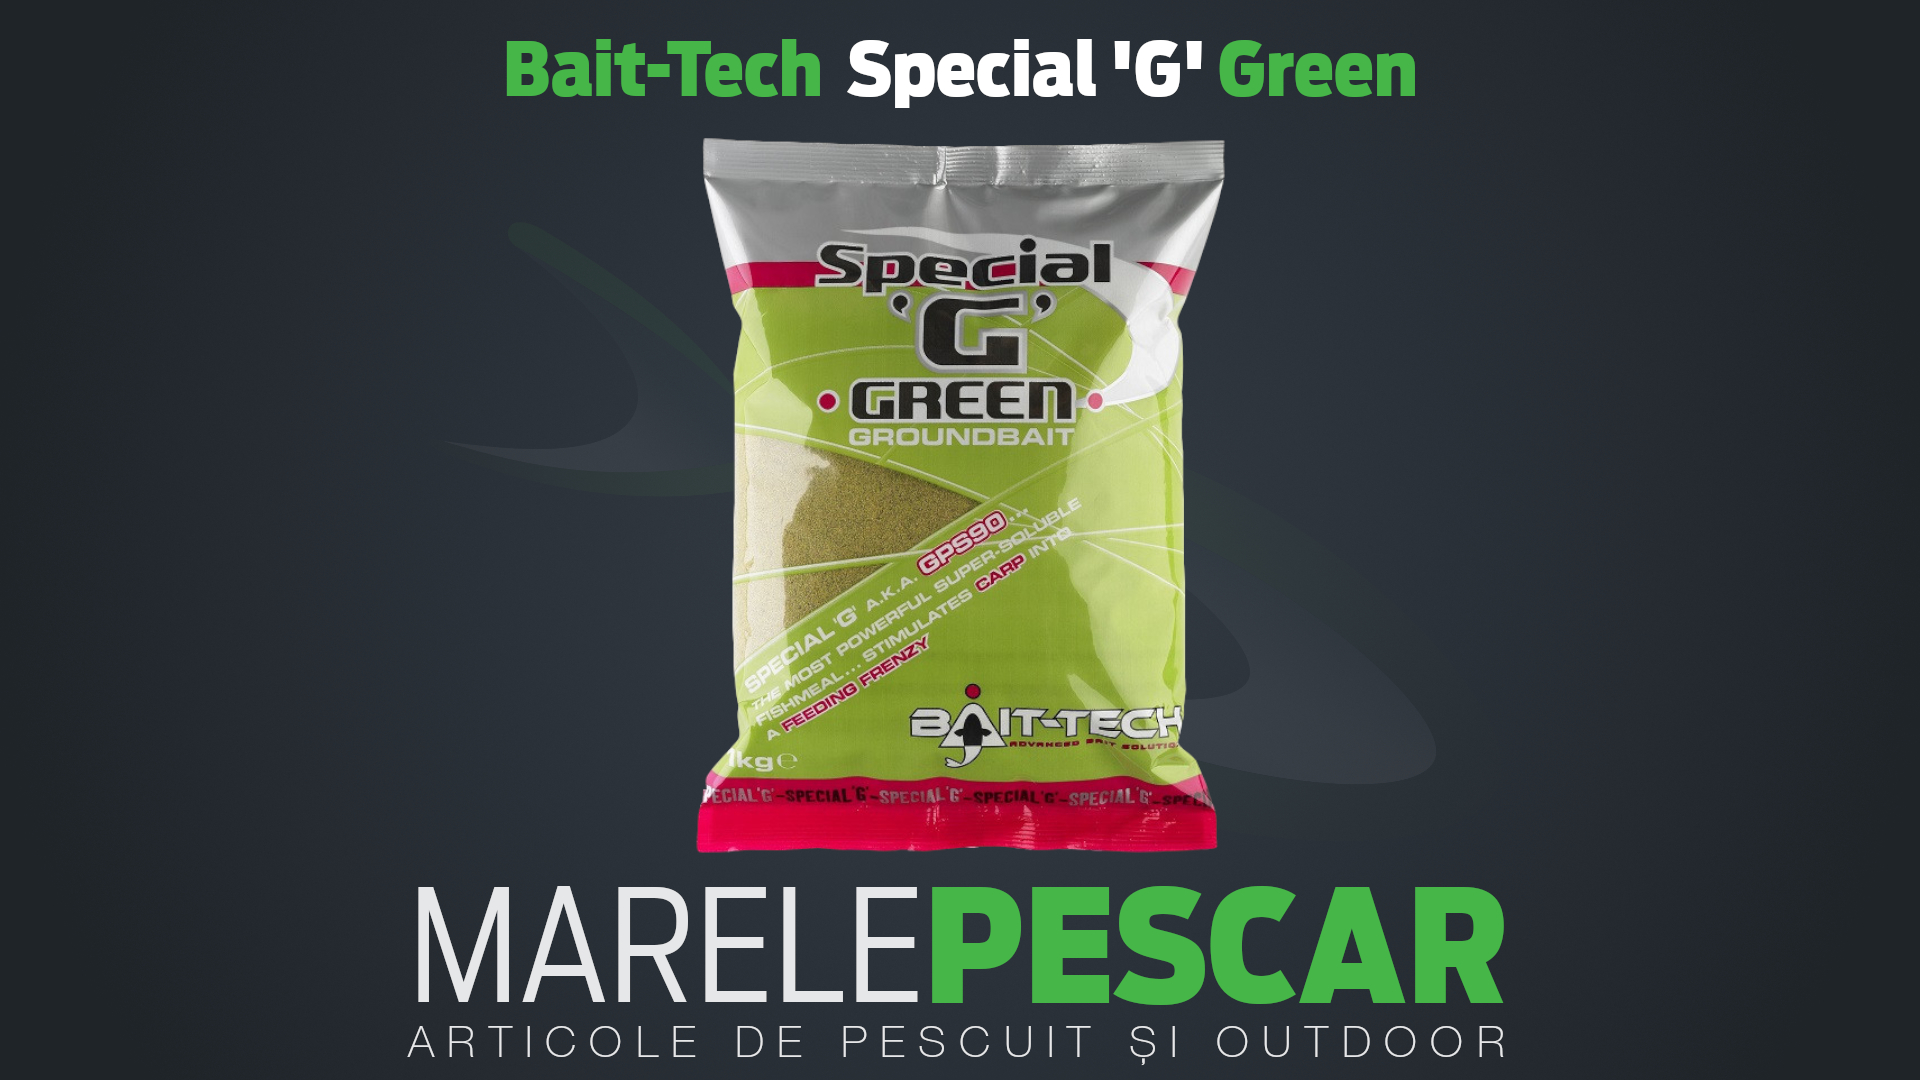 Bait-Tech Special G Green